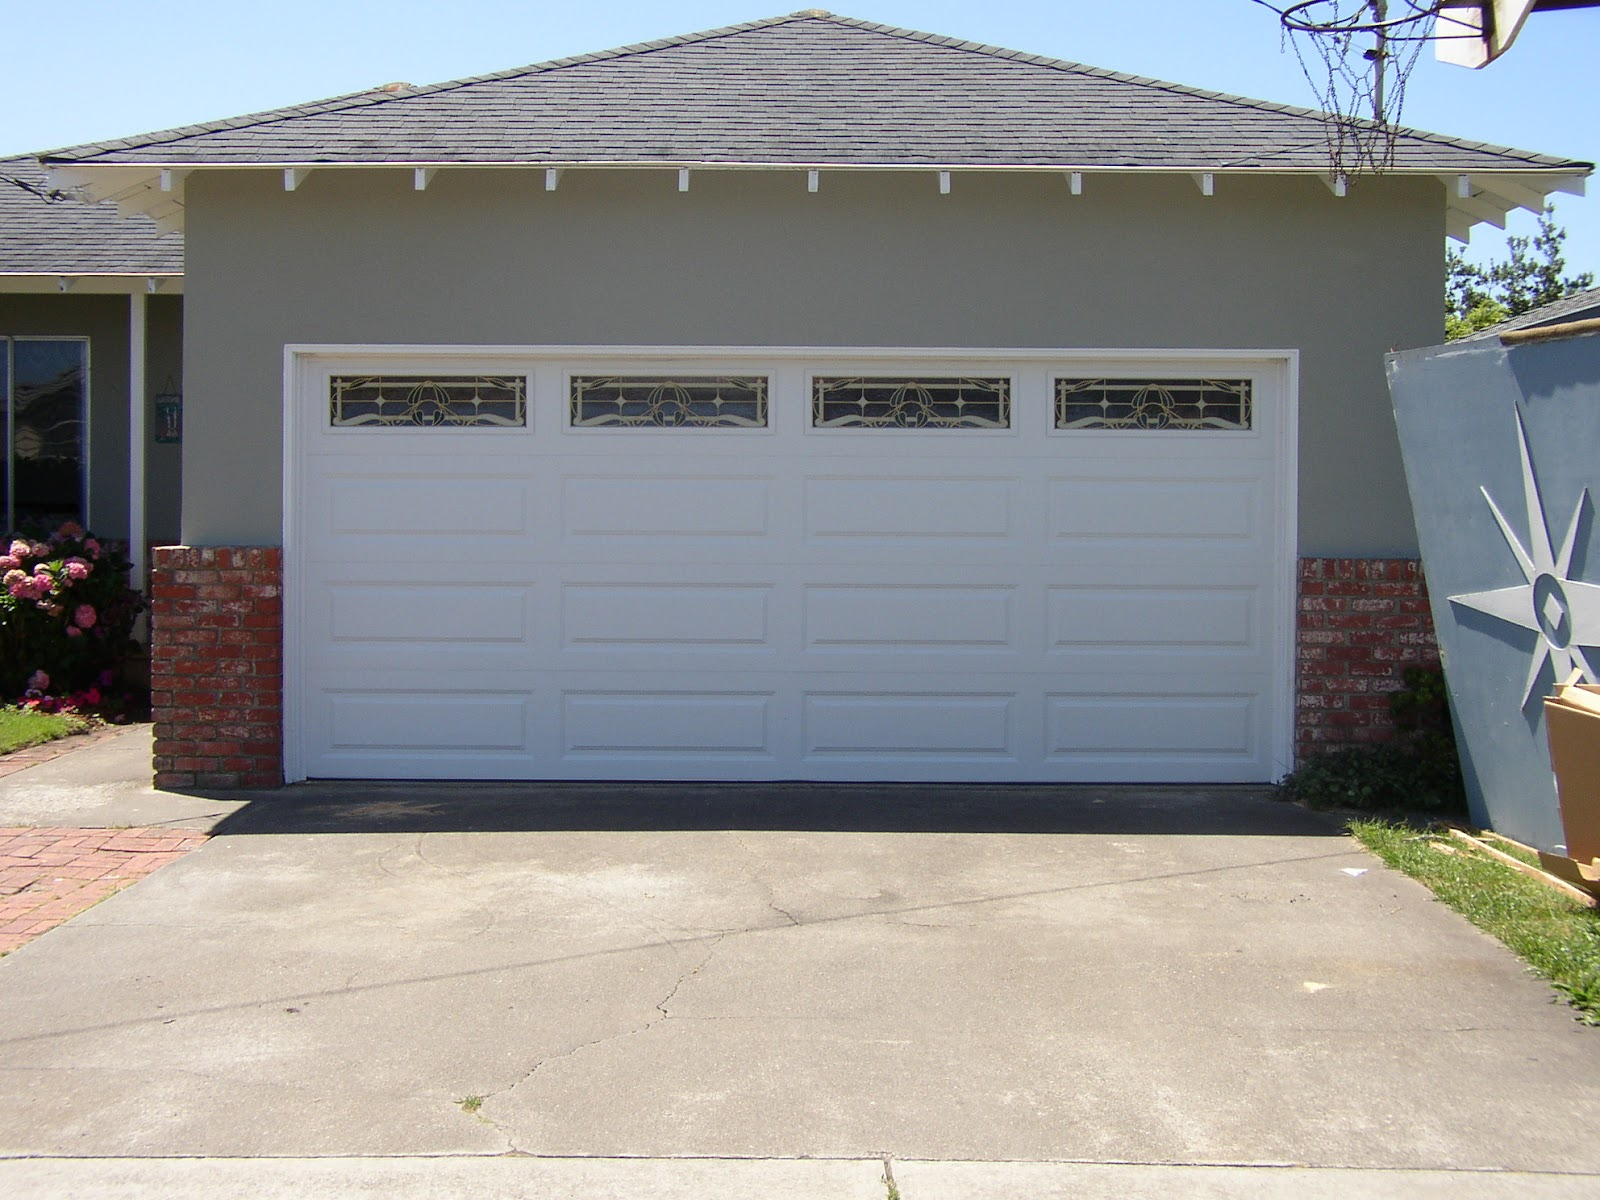 1200 #3A6991 Gainesville Garage DoorGainesville Garage Door wallpaper Doors And Garage Doors 37151600